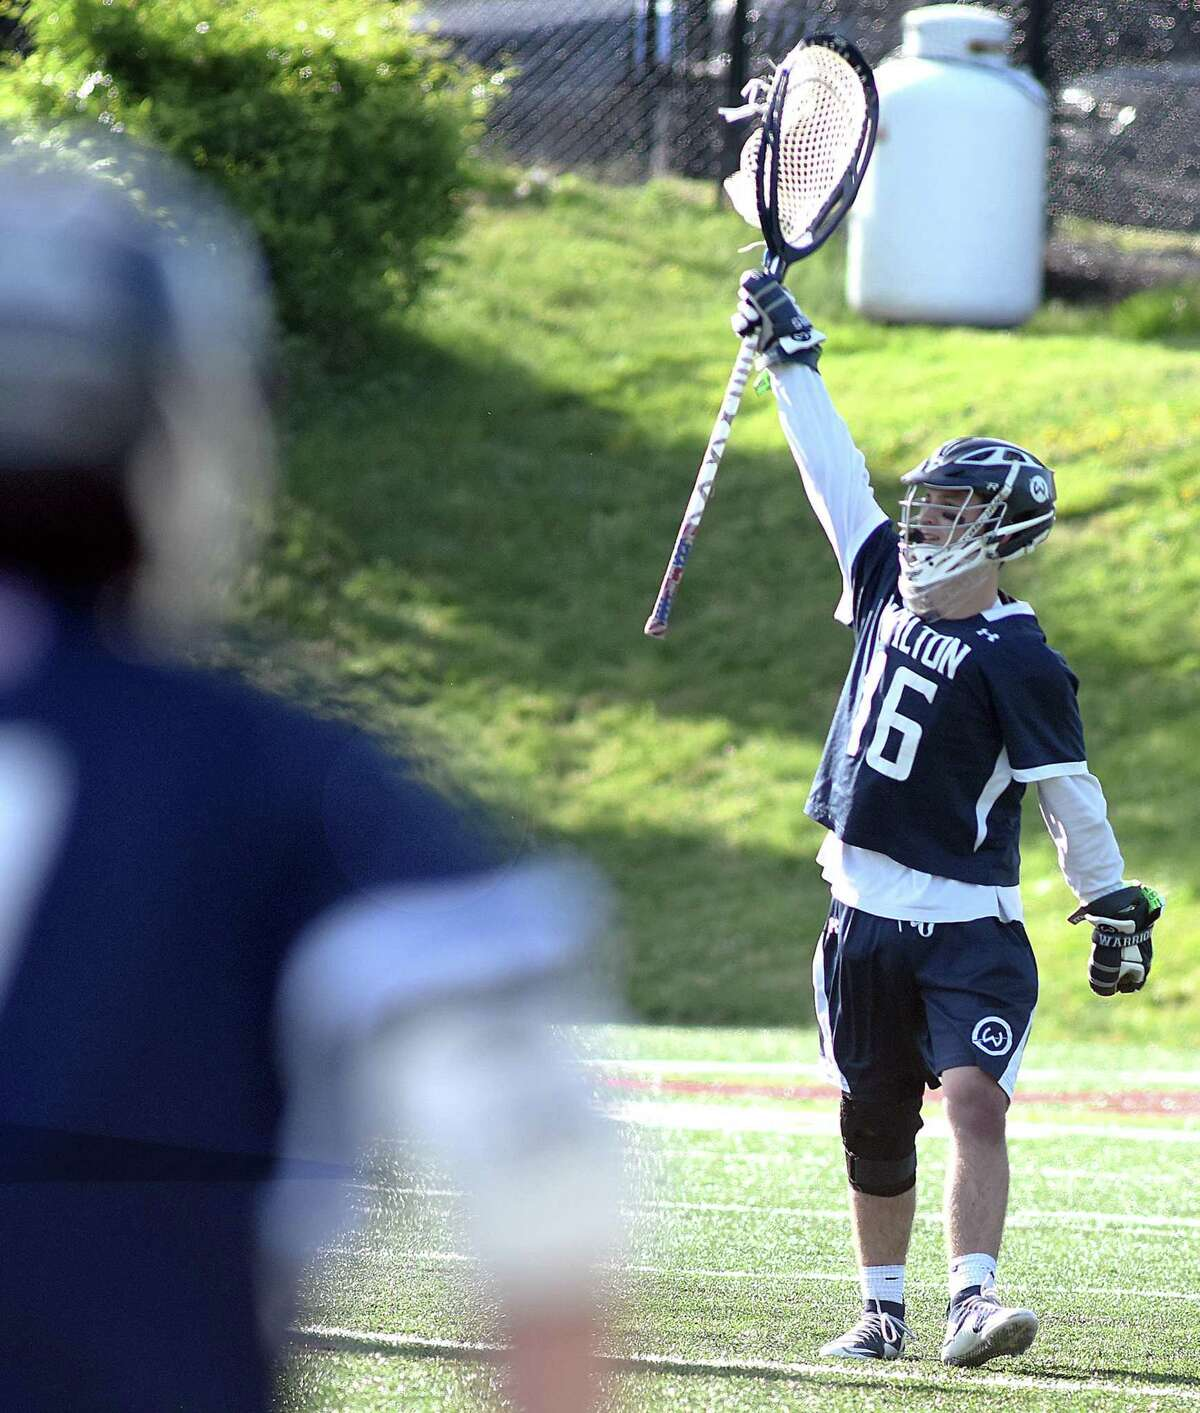 Wilton goalie Andrew Calabrese hoists his stick in victory after the final buzzer in the Warriors 9-7 FCIAC boys lacrose quarterfinal win over New Canaan at Dunning Field in New Canaan. Calabrese made 12 saves to backstop the Wilton win.